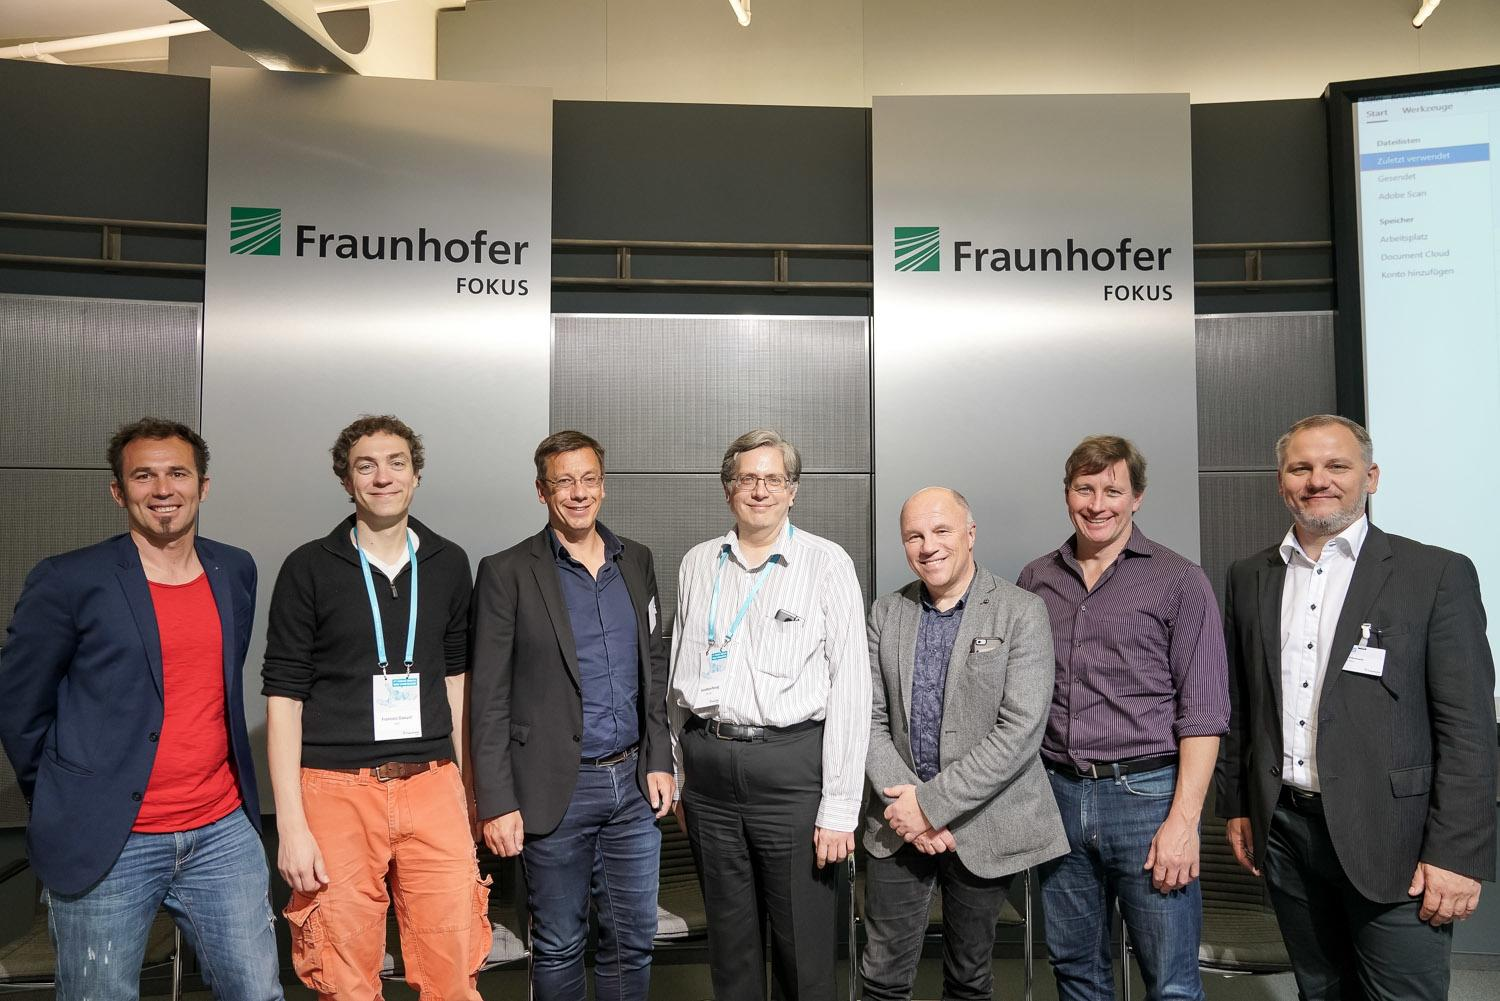 Fraunhofer FOKUS FAME MWS Media Web Symposium 2018 Conference